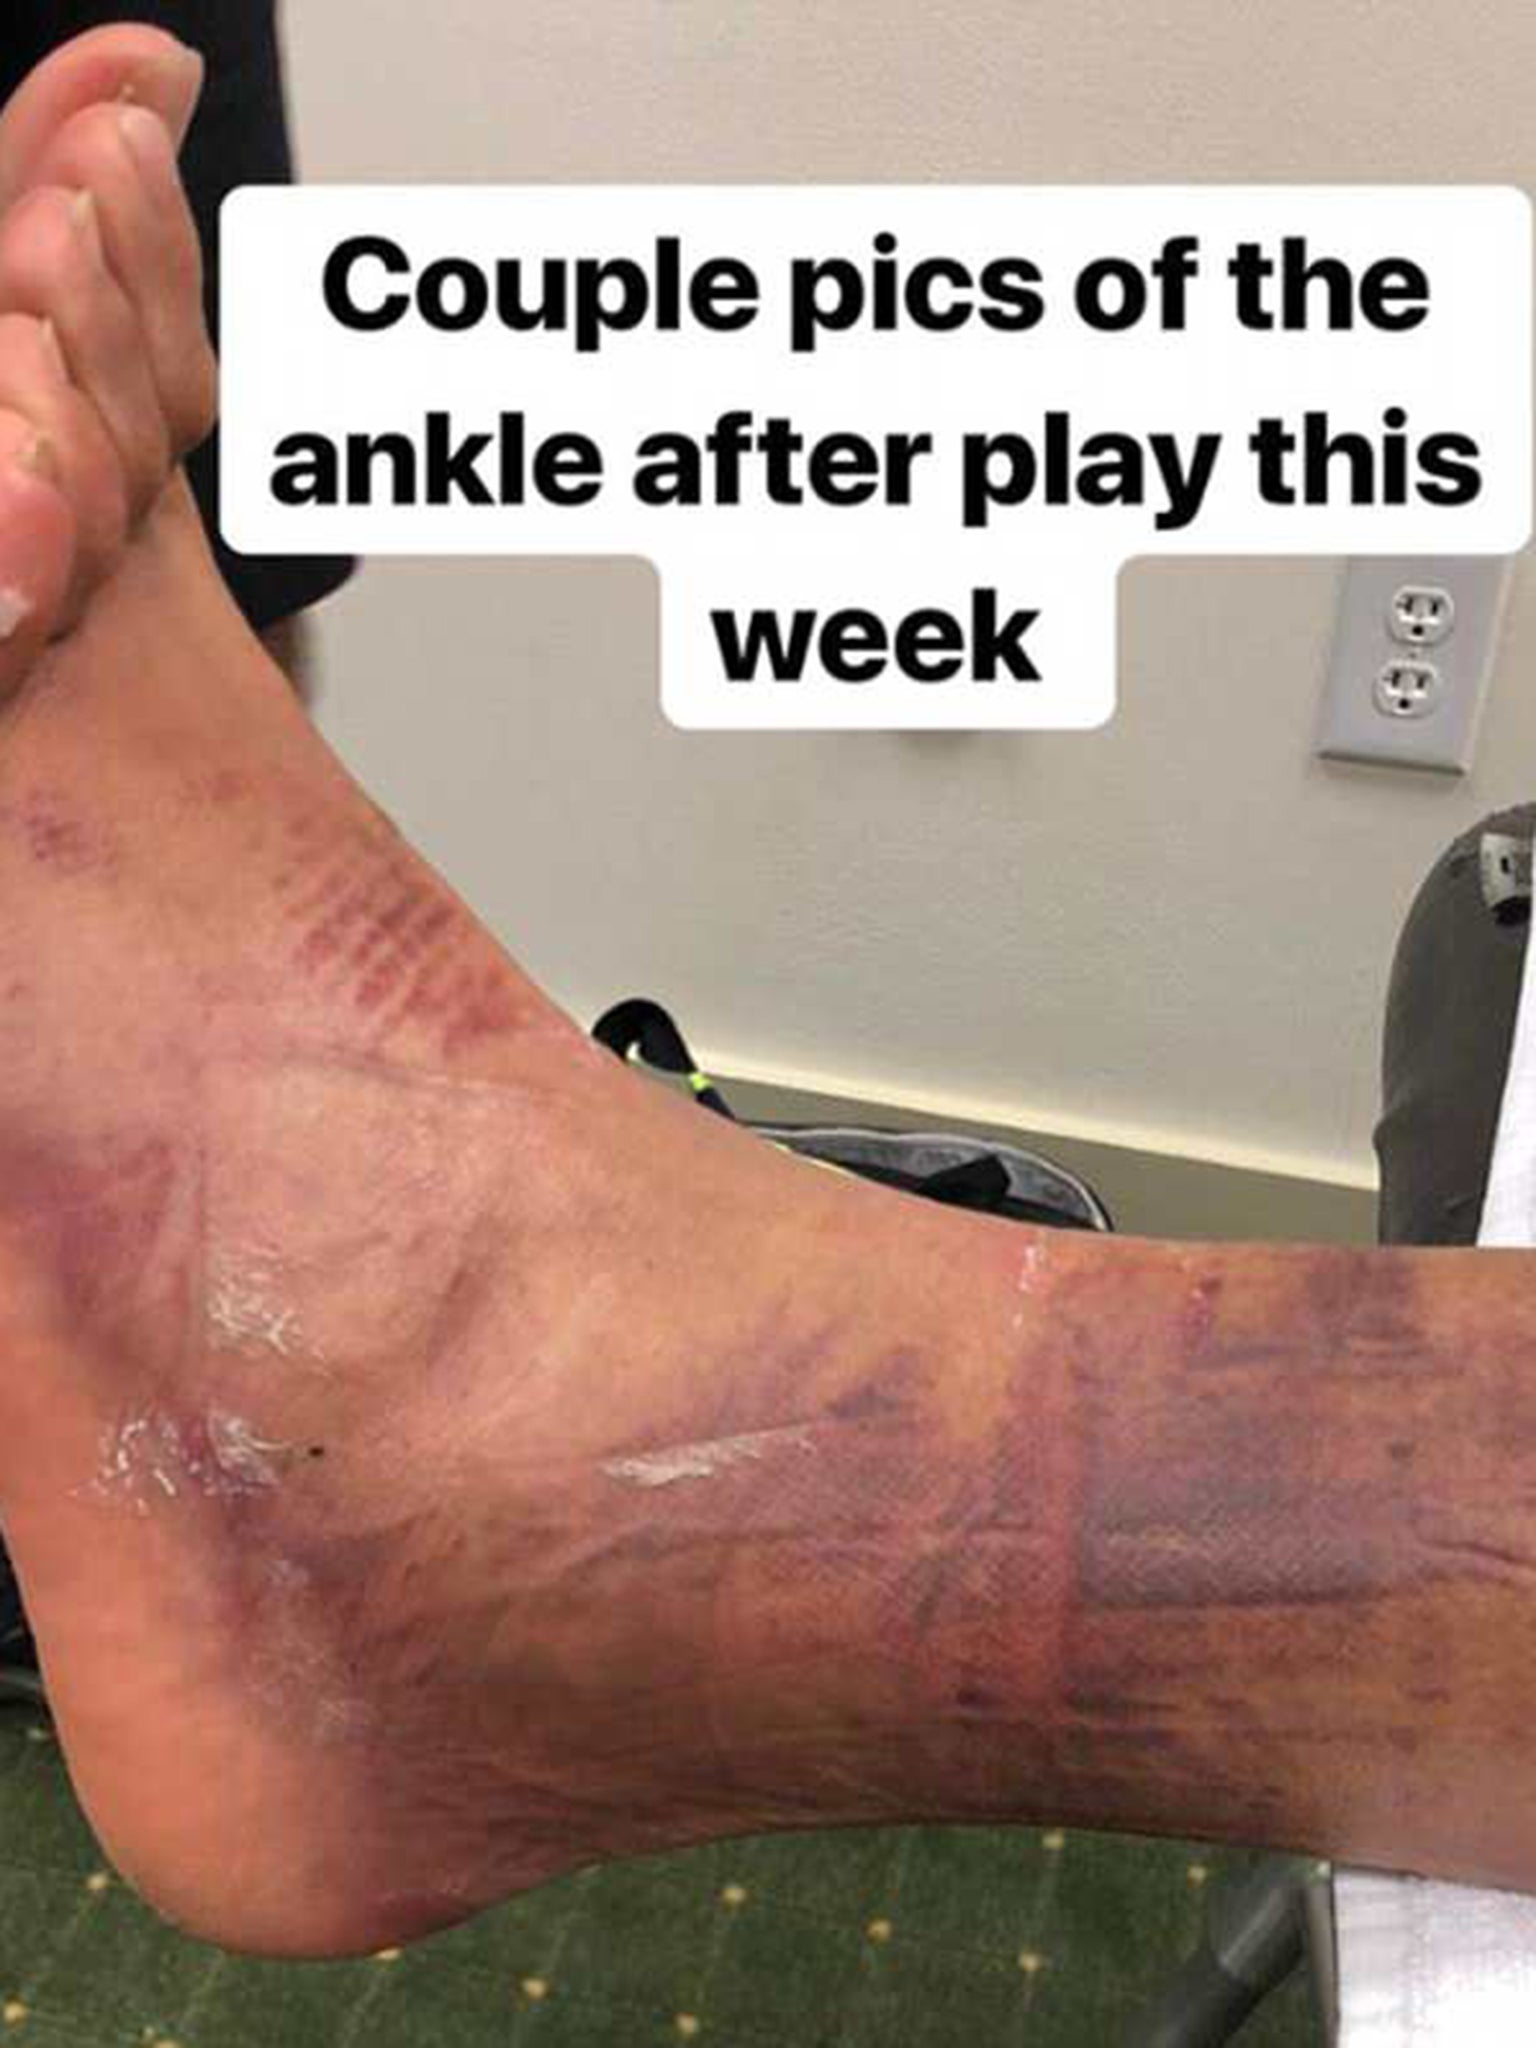 Tony Finau reveals injuries caused by dislocated ankle at The